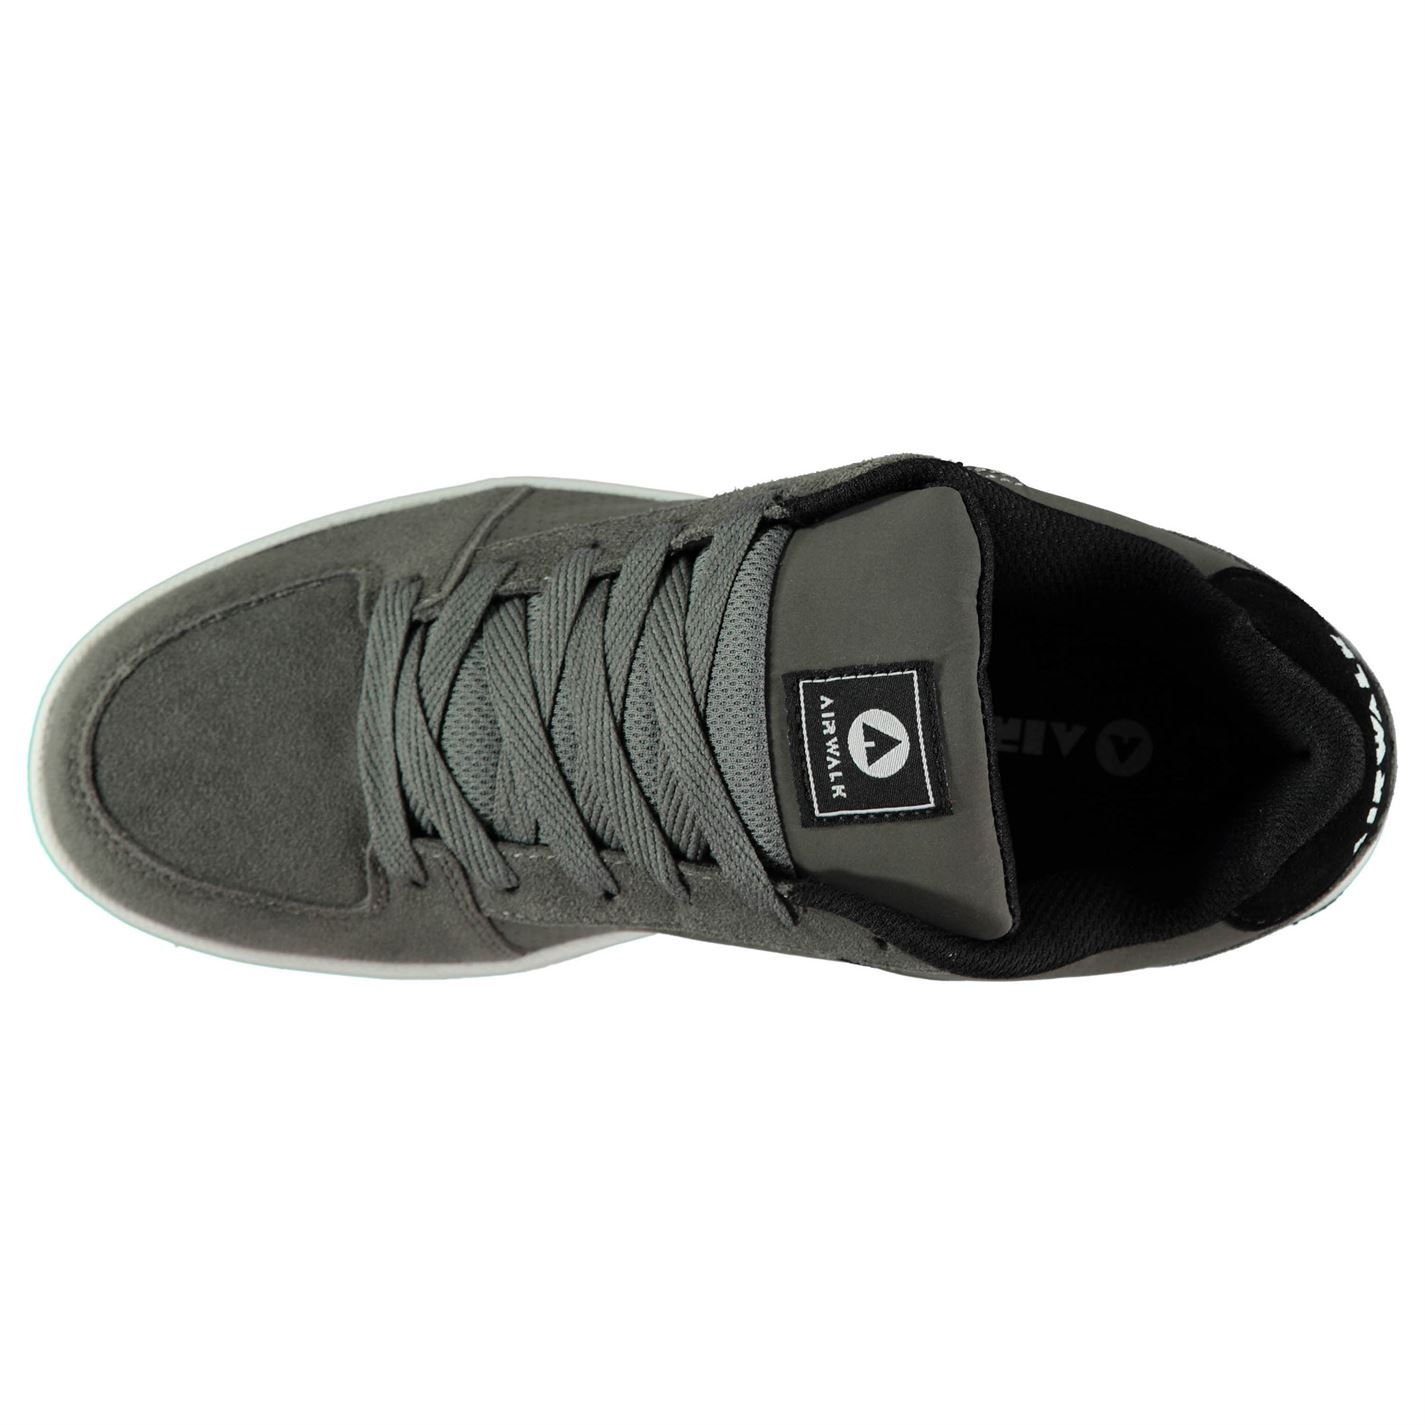 Airwalk-Mens-Brock-Skate-Shoes-Lace-Up-Suede-Accents-Sport-Casual-Trainers thumbnail 23